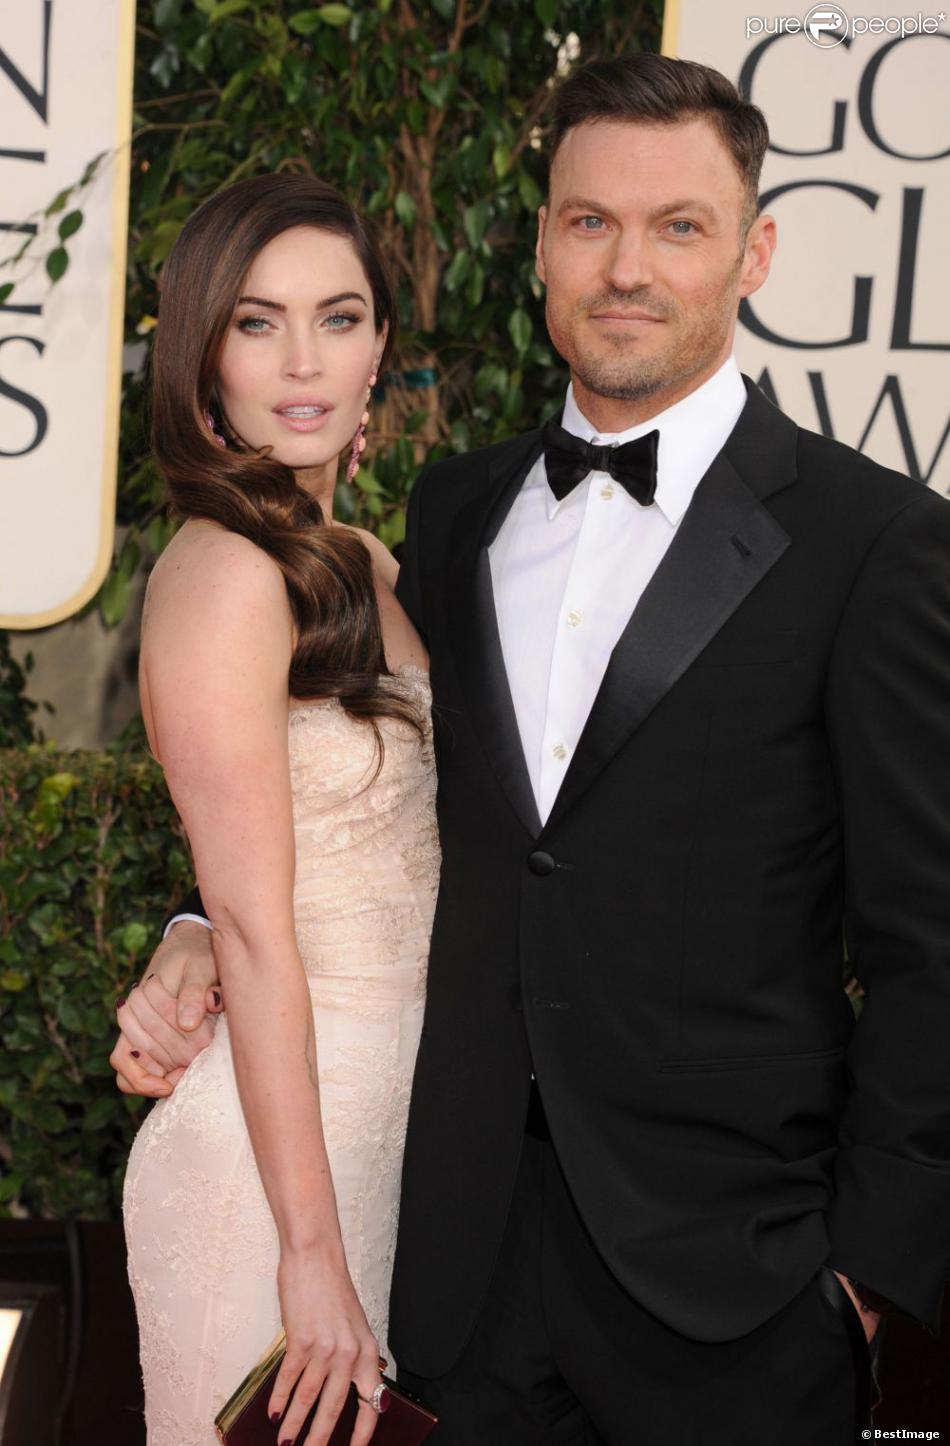 Megan Fox et Brian Austin Green lors des 70e Annual Golden Globe Awards à Los Angeles, le 12 janvier 2013.